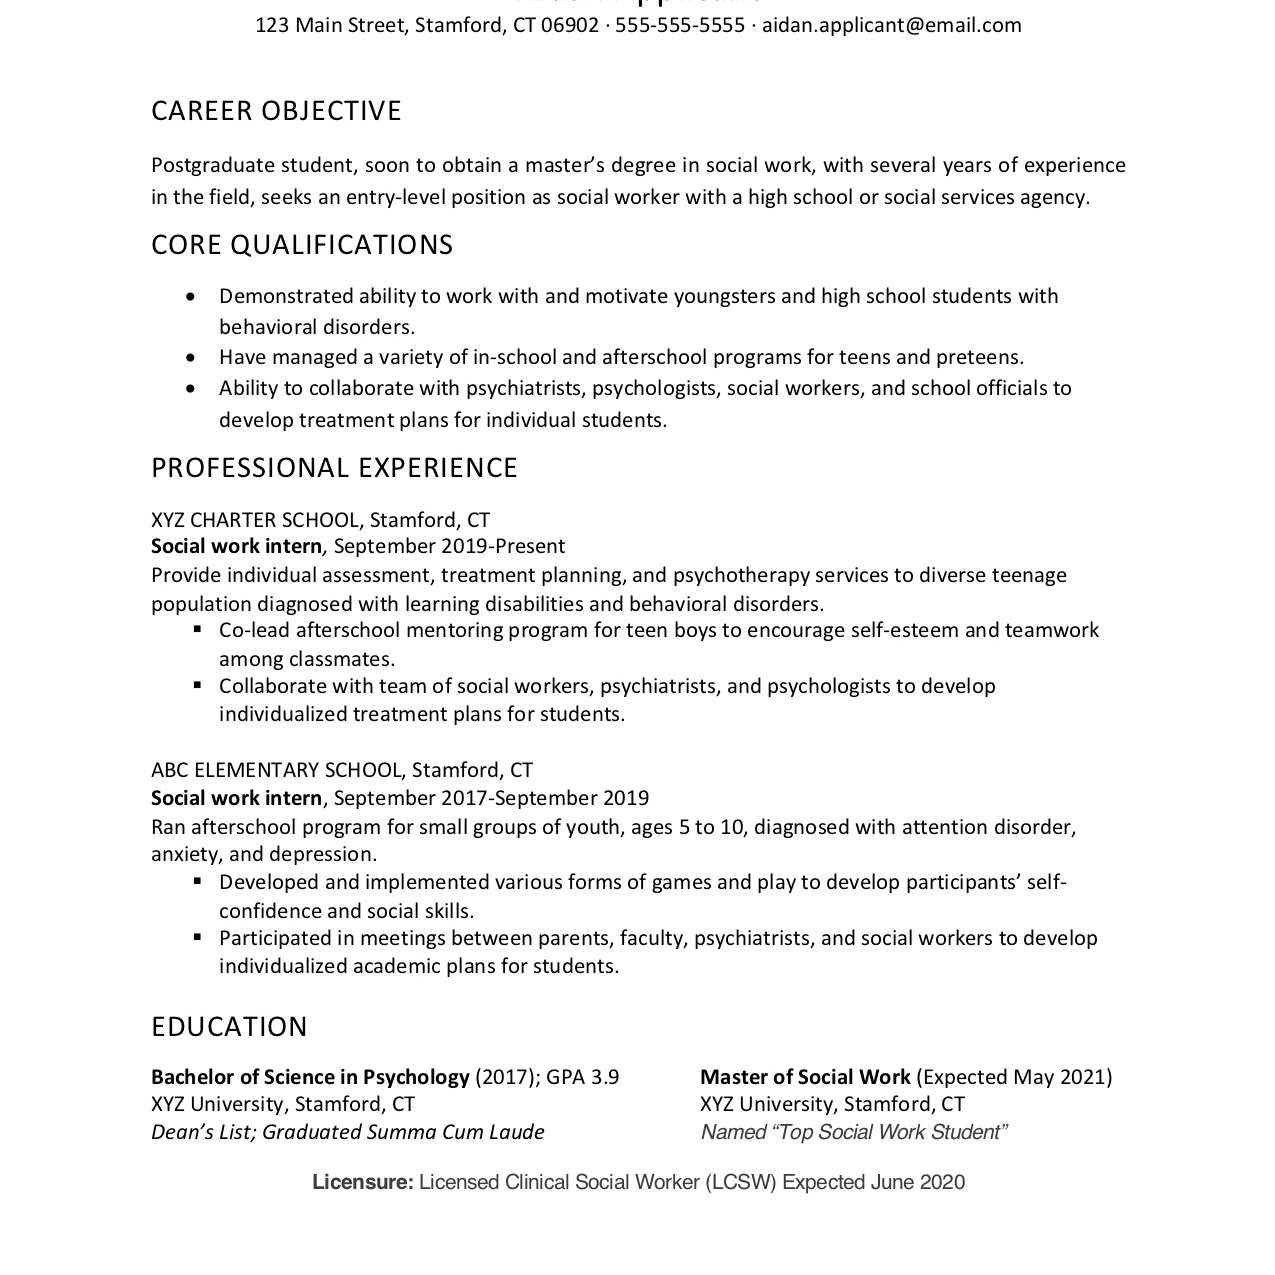 social worker cover letter and resume sample master of work examples ceo payroll officer Resume Master Of Social Work Resume Examples